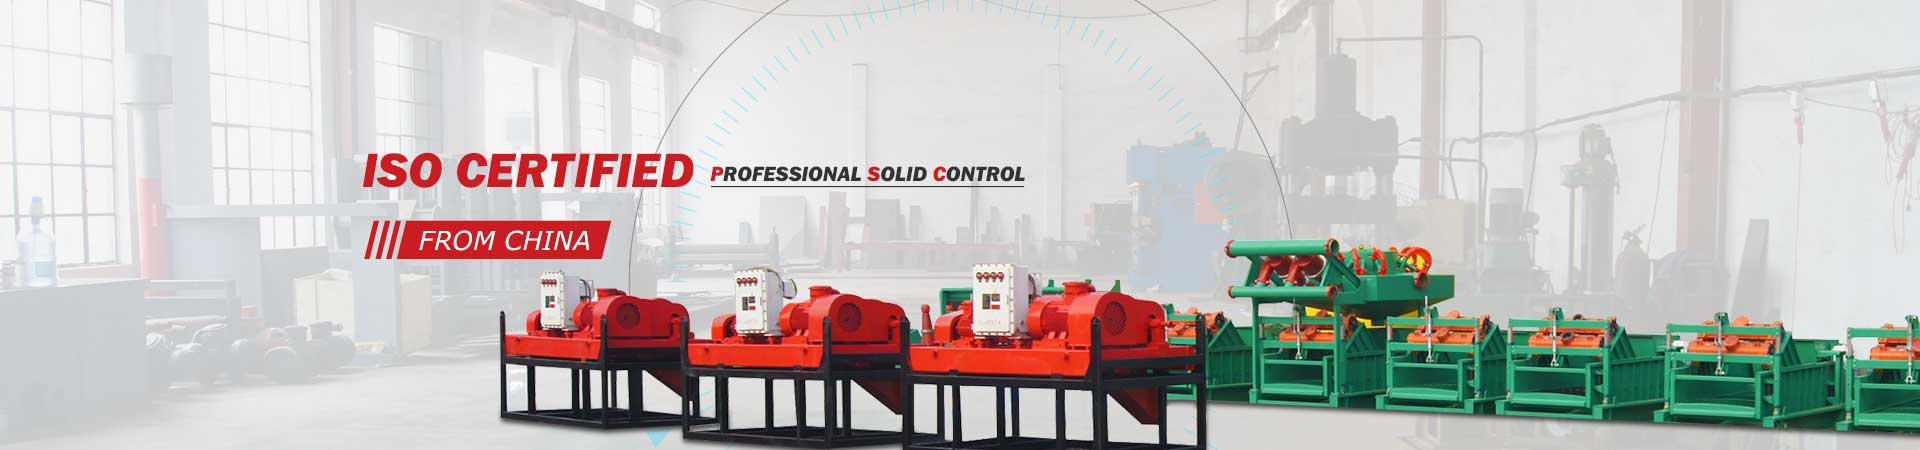 Solid Control Equipment